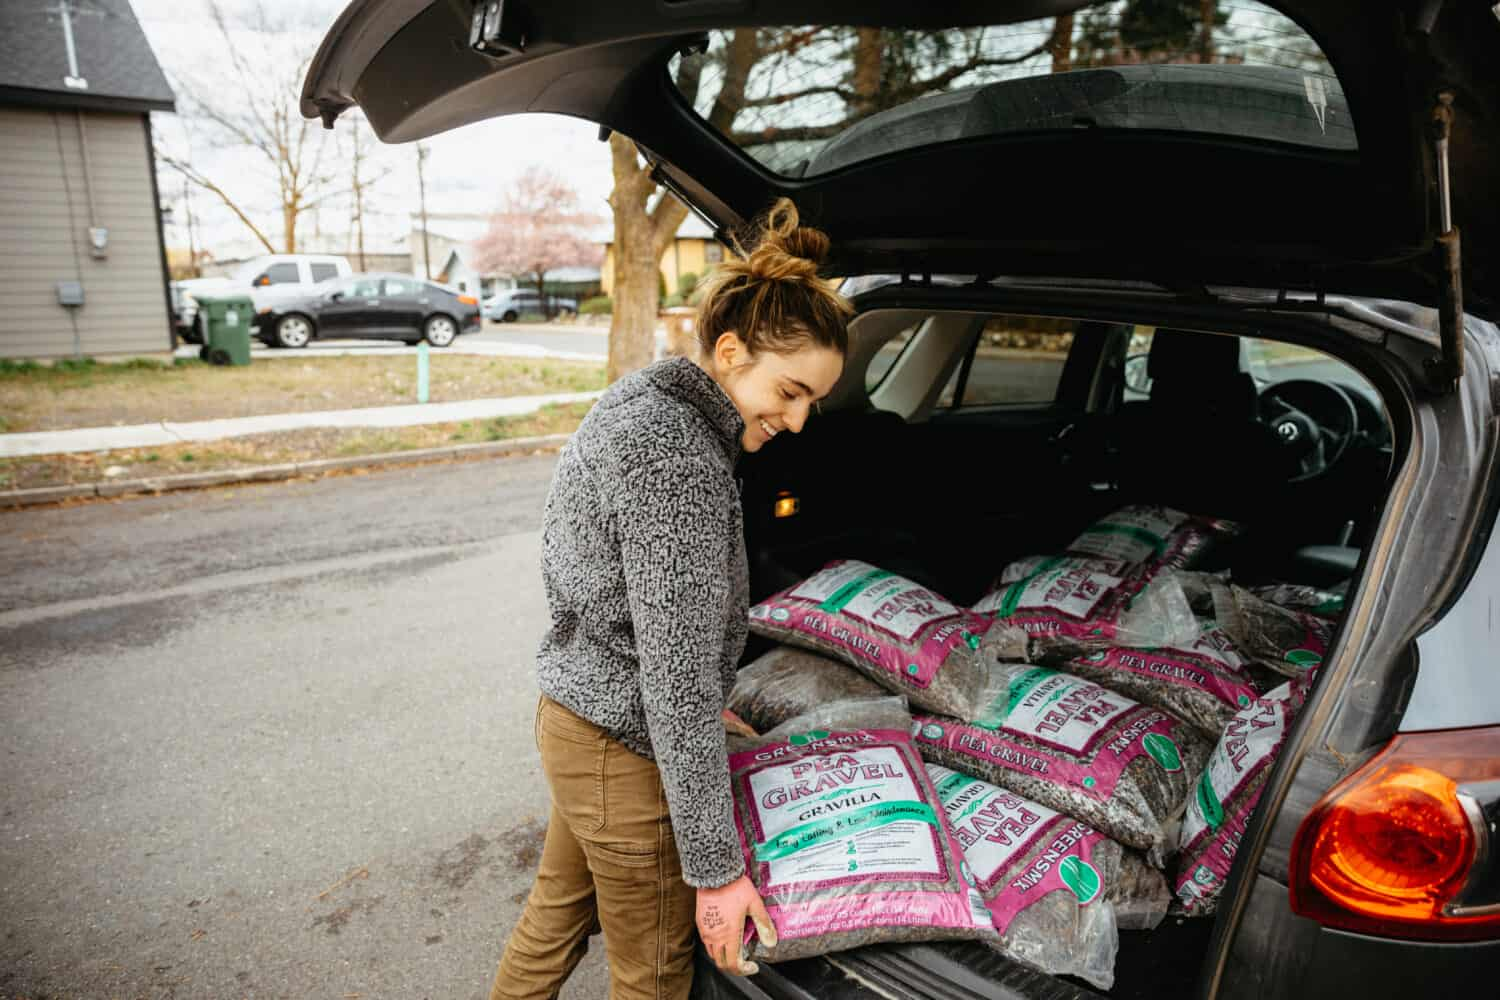 Emily Mandagie unloading pea gravel from the car - TheMandagies.com